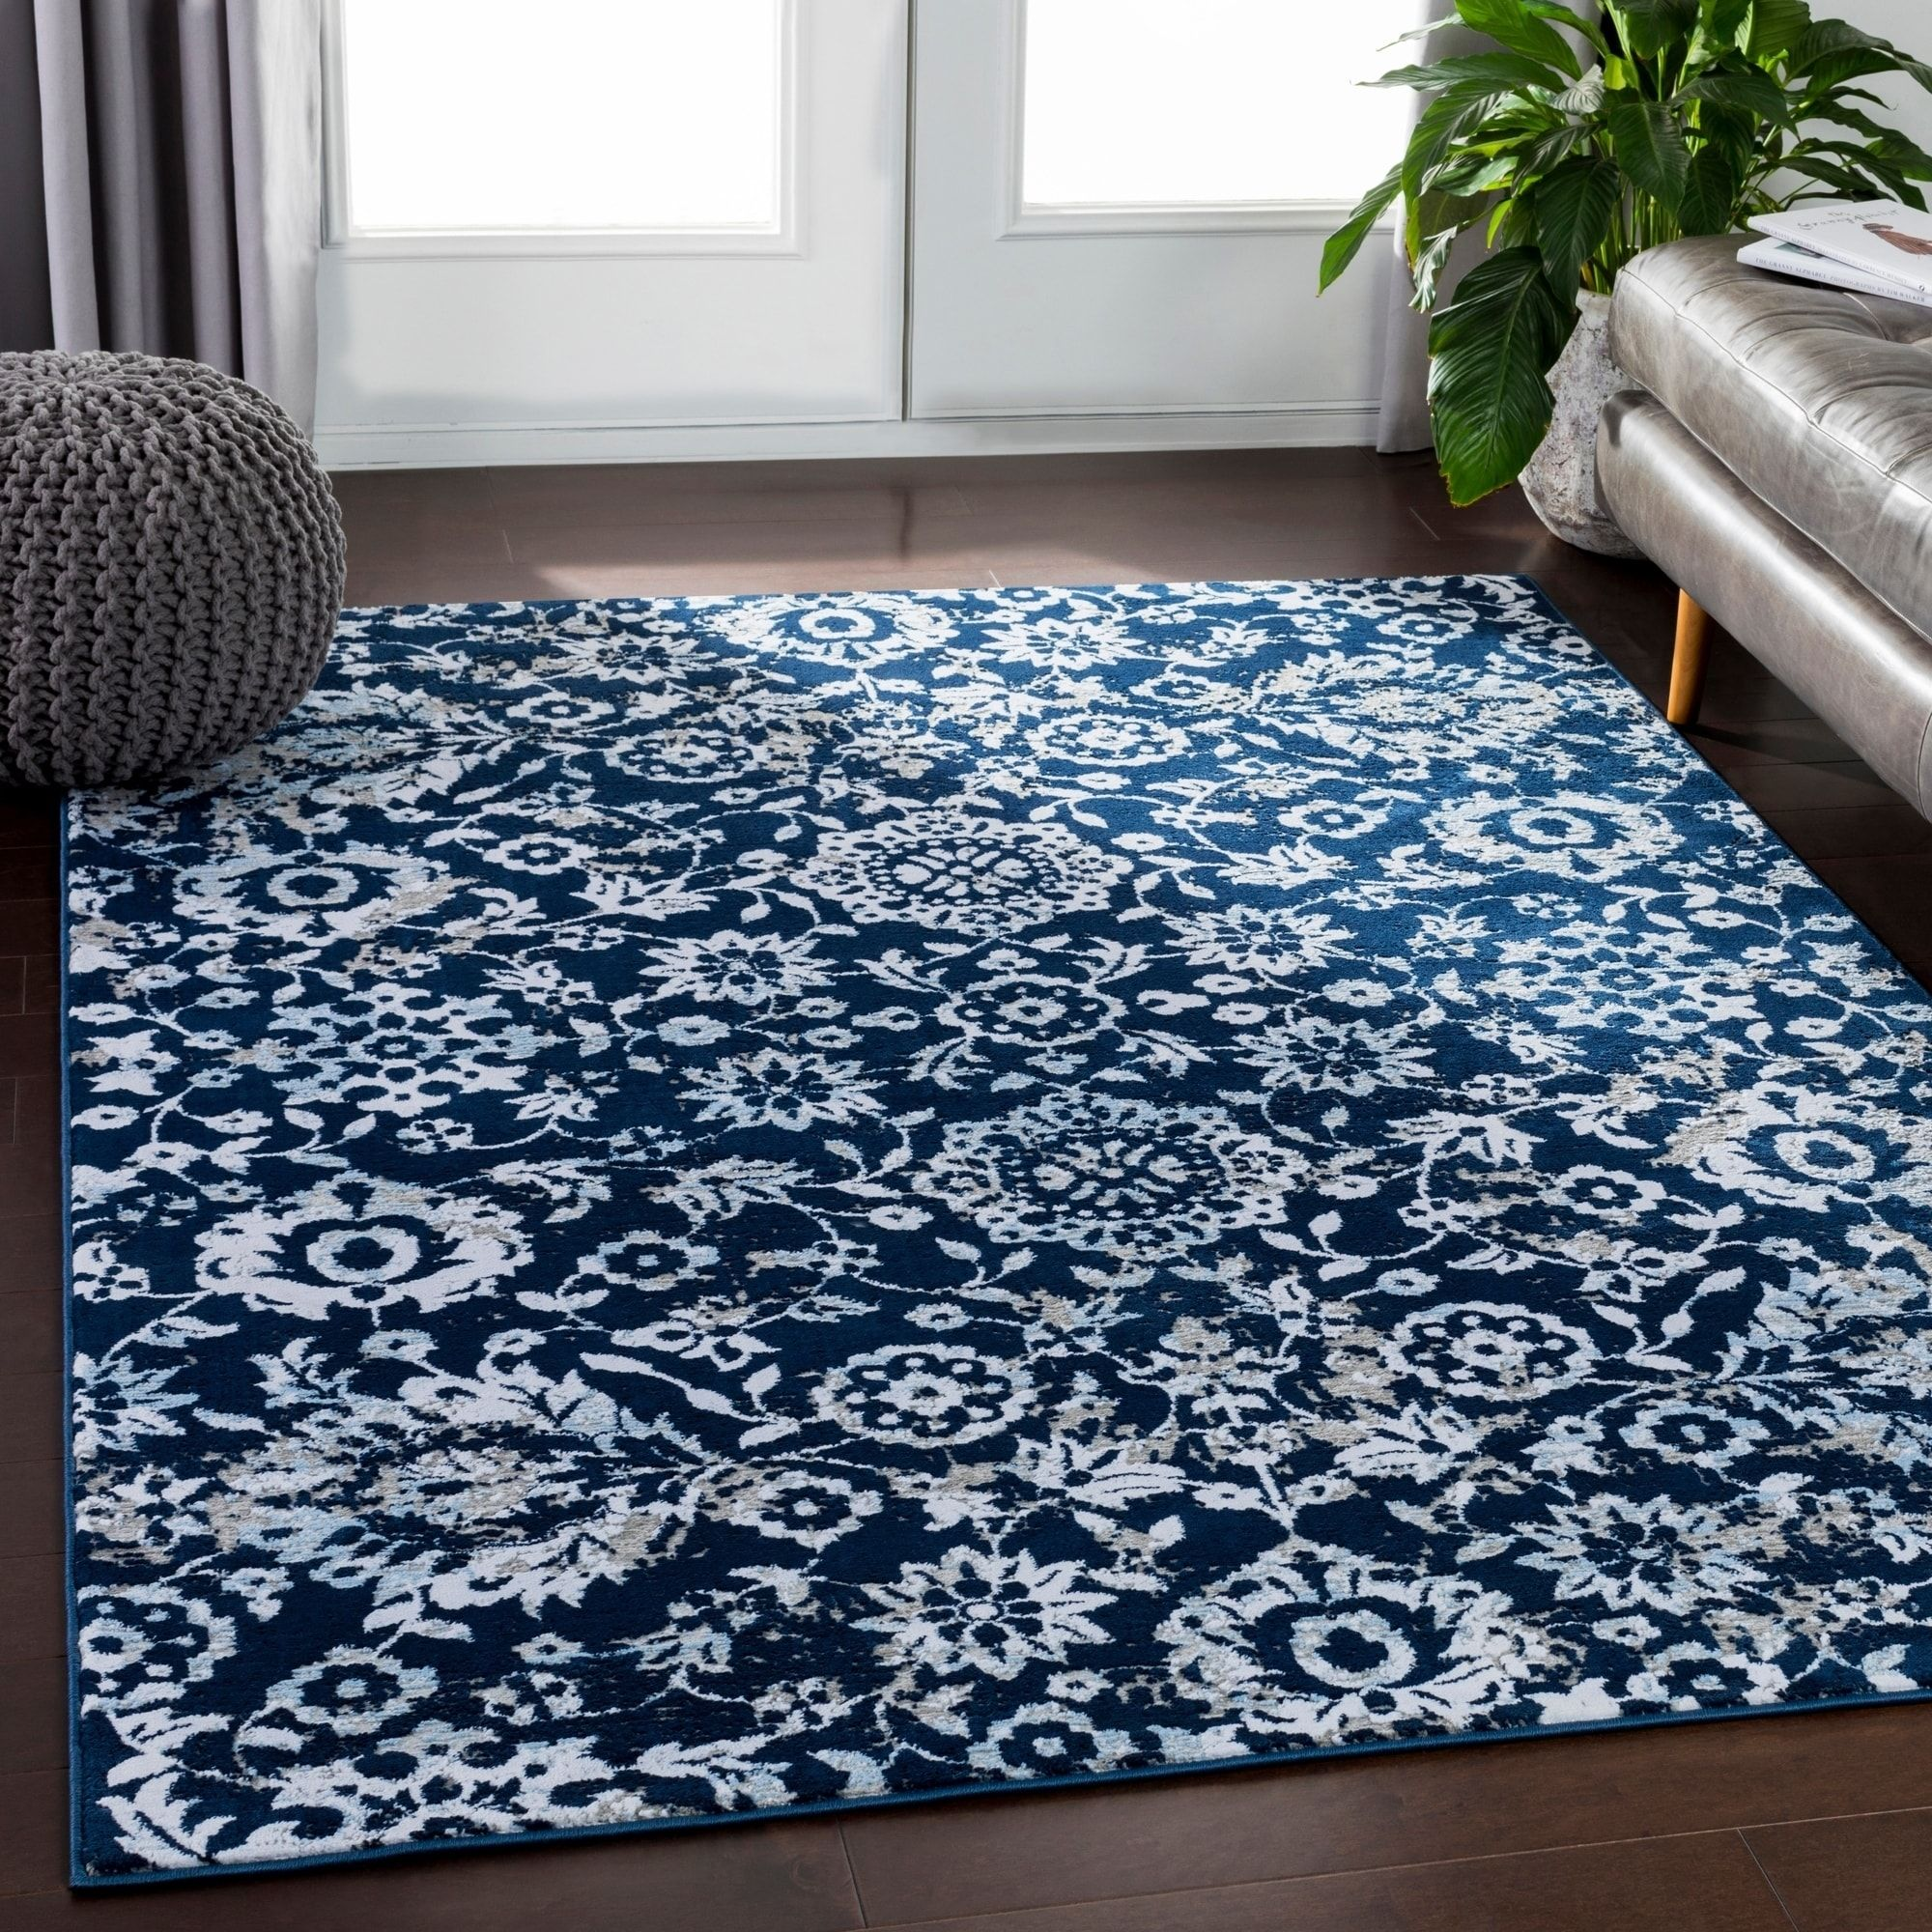 Online Shopping Bedding Furniture Electronics Jewelry Clothing More Area Rugs Teal Area Rug Light Blue Area Rug